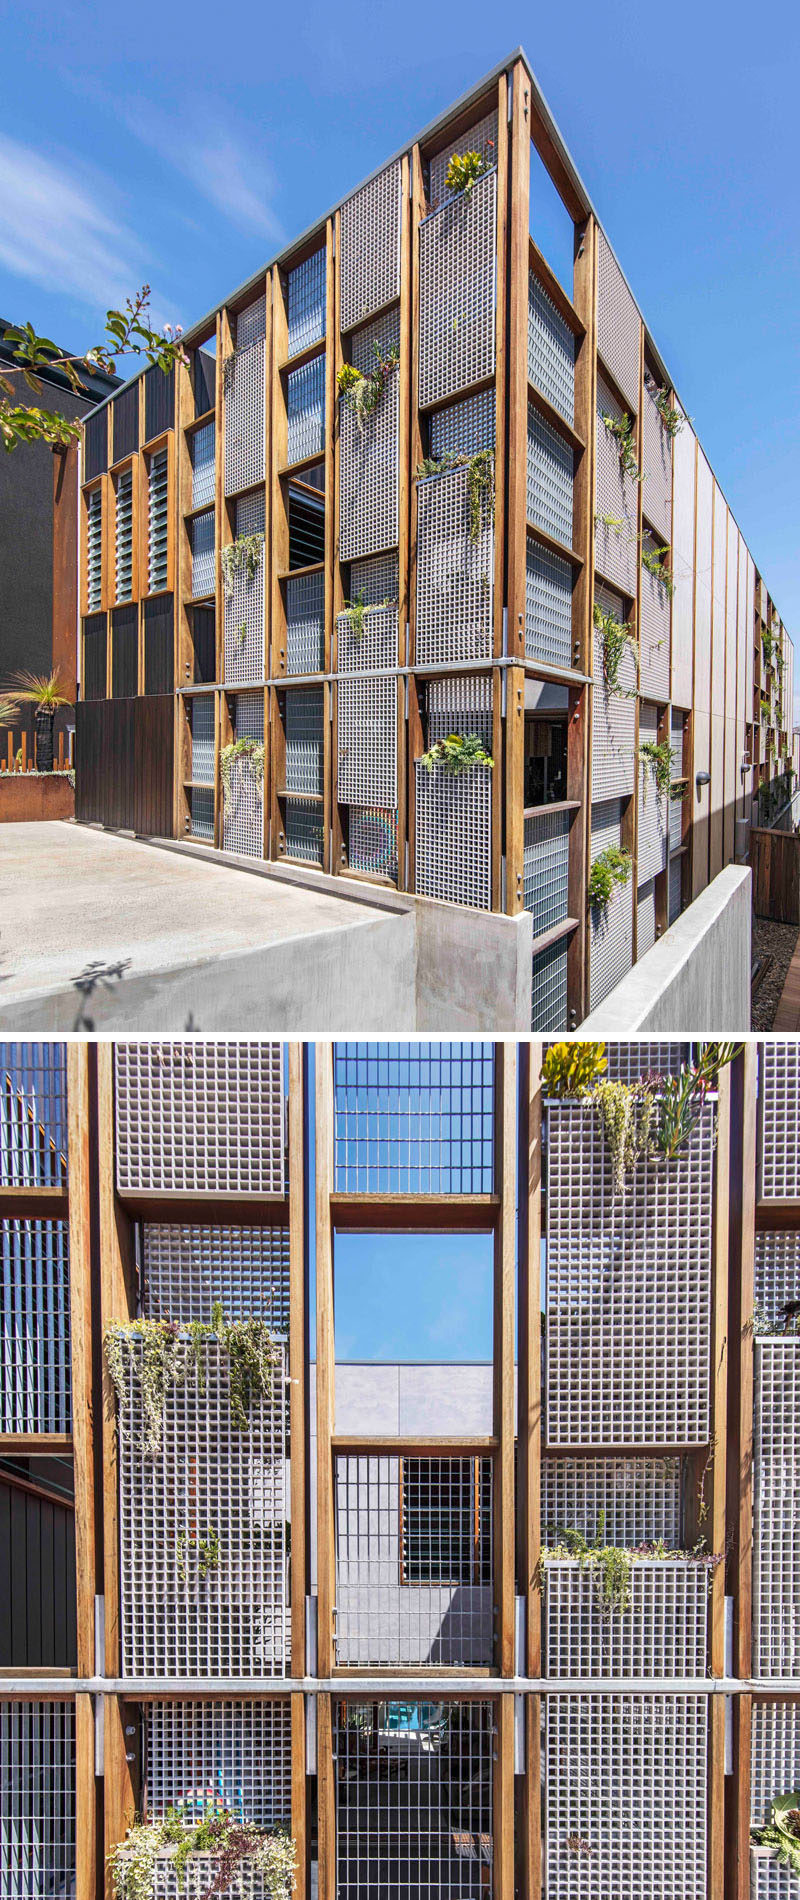 The facade of this modern house is made up of a wood grid with windows and perforated metal panels. These metal panels allow for a vertical garden to be grown over time.